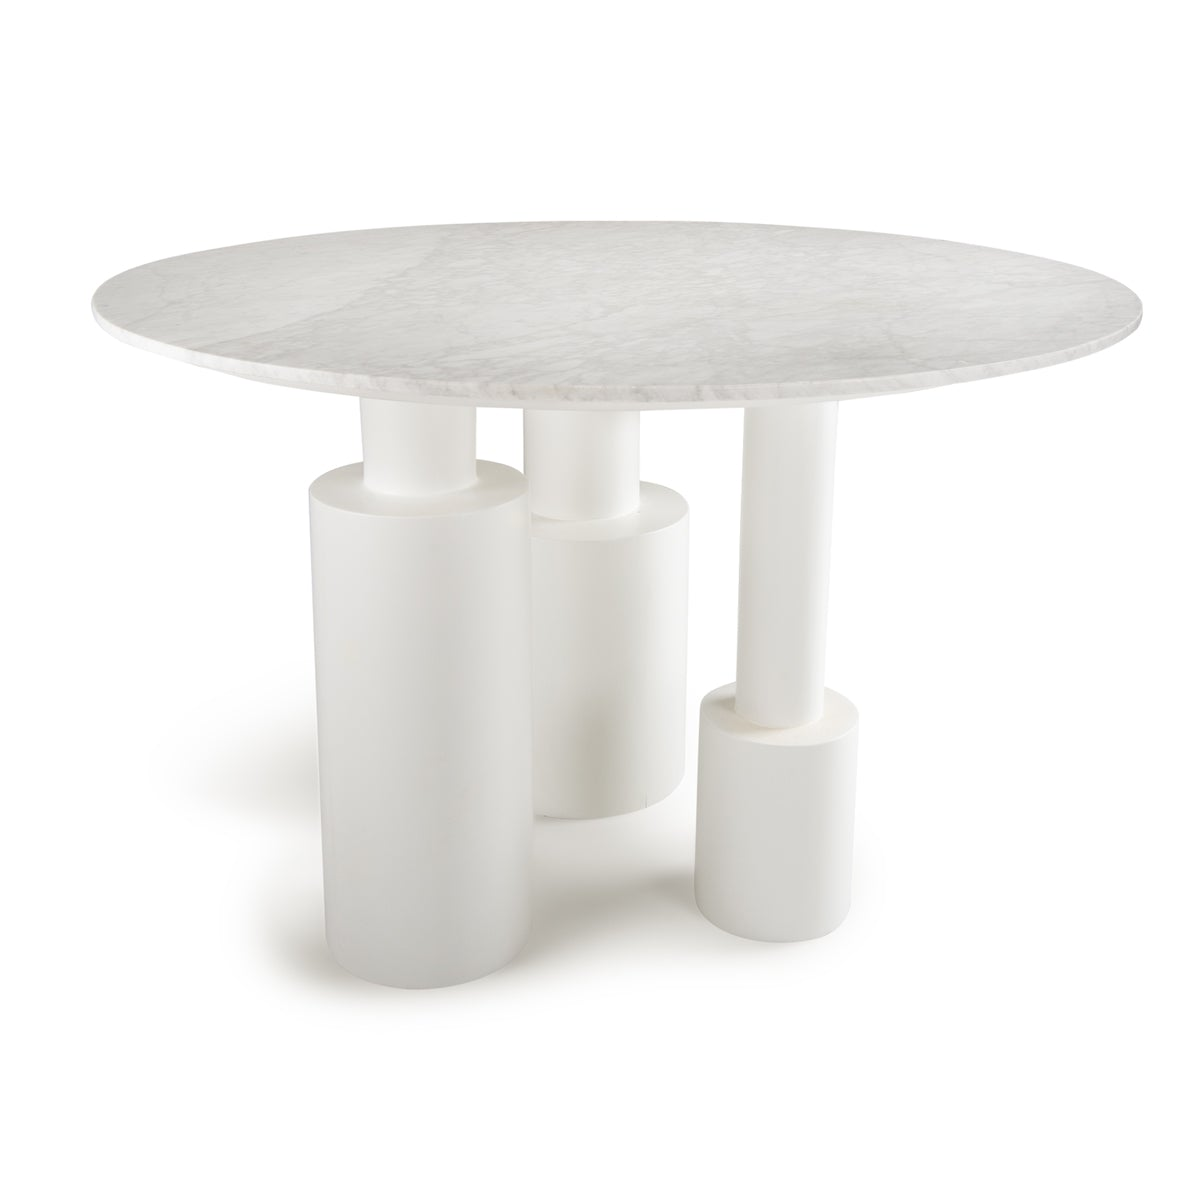 Mixed Up Round Dining Table - 48""